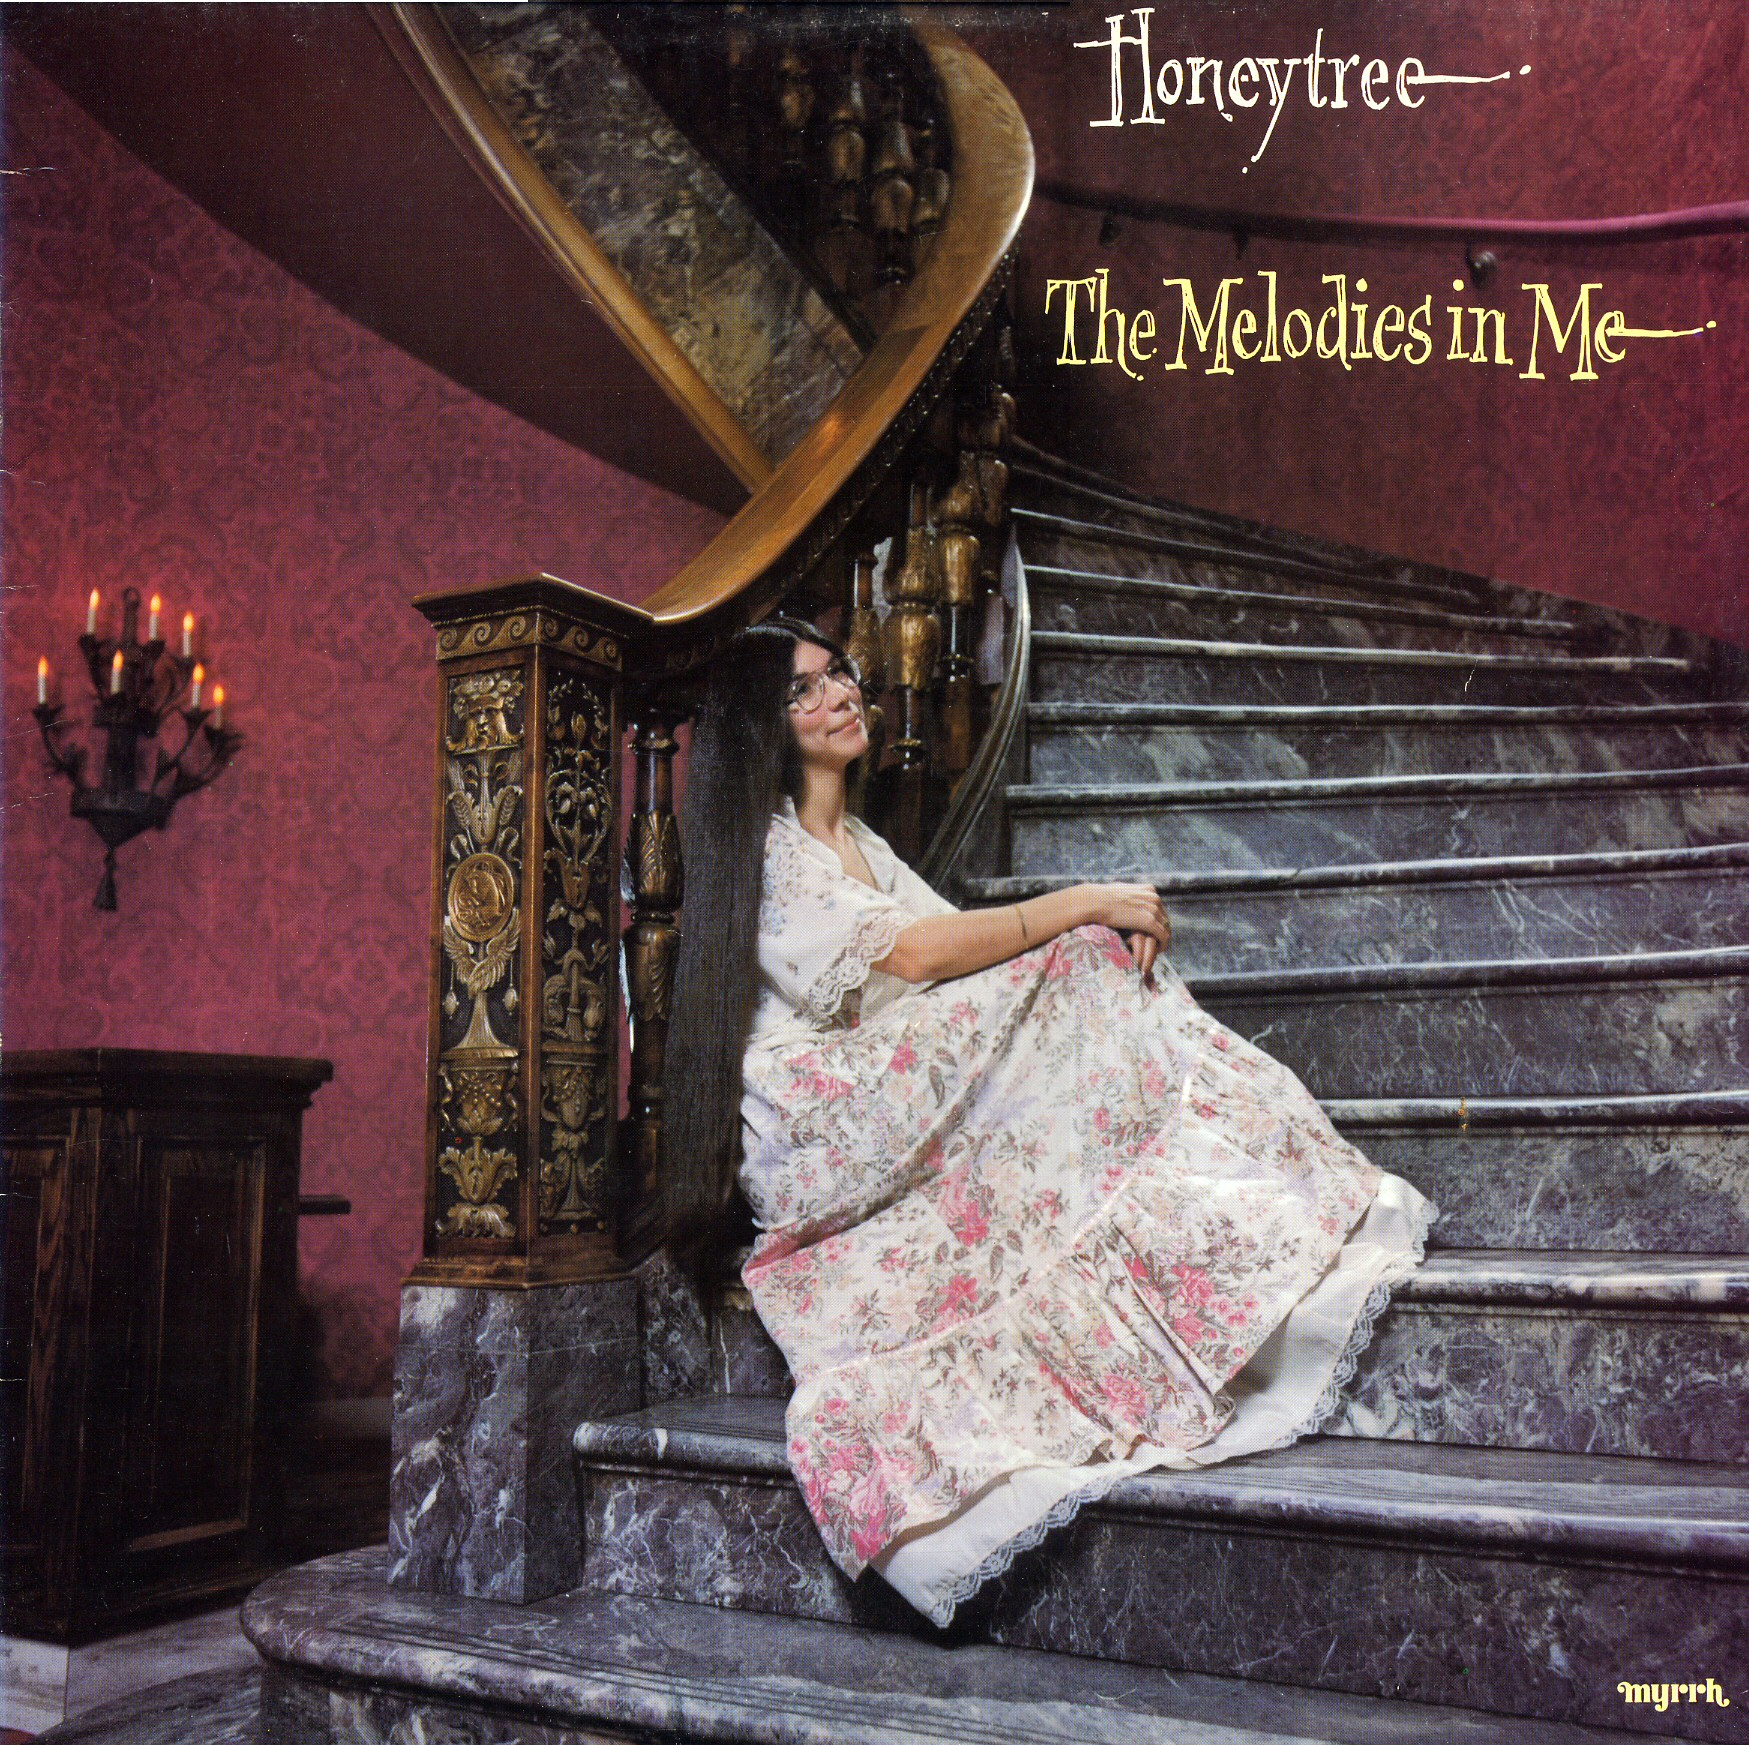 honeytree - the melodies in me